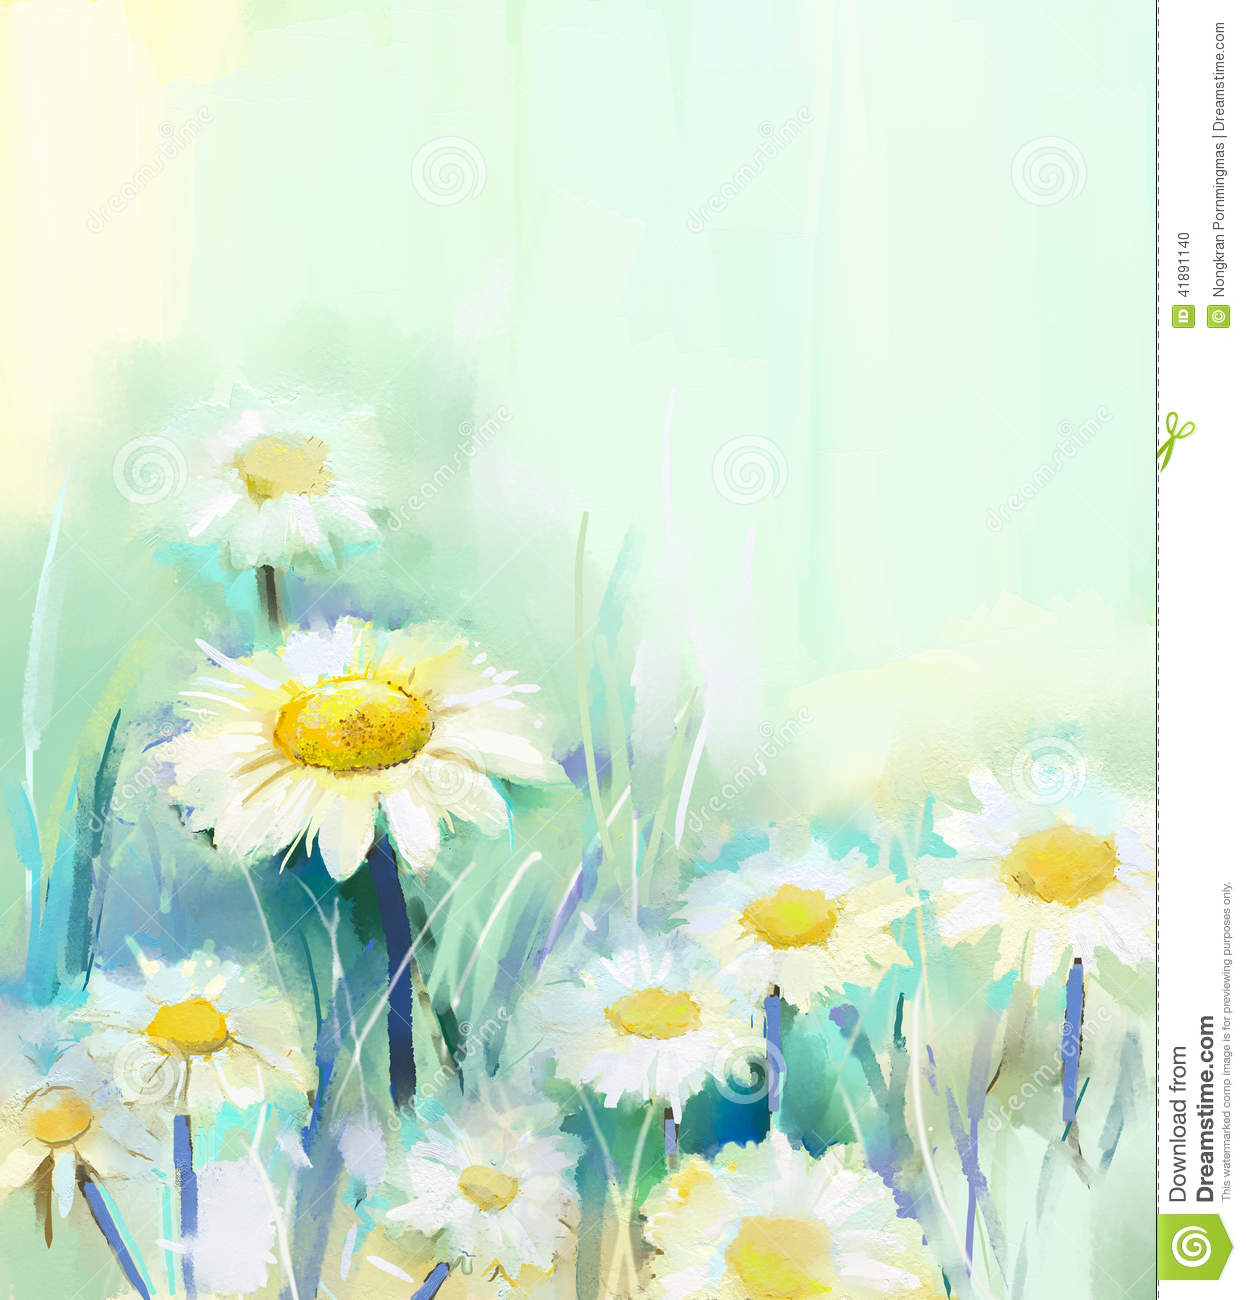 Abstract oil painting white flowers field in soft color stock oil painting white daisy flowers in field stock photo mightylinksfo Gallery